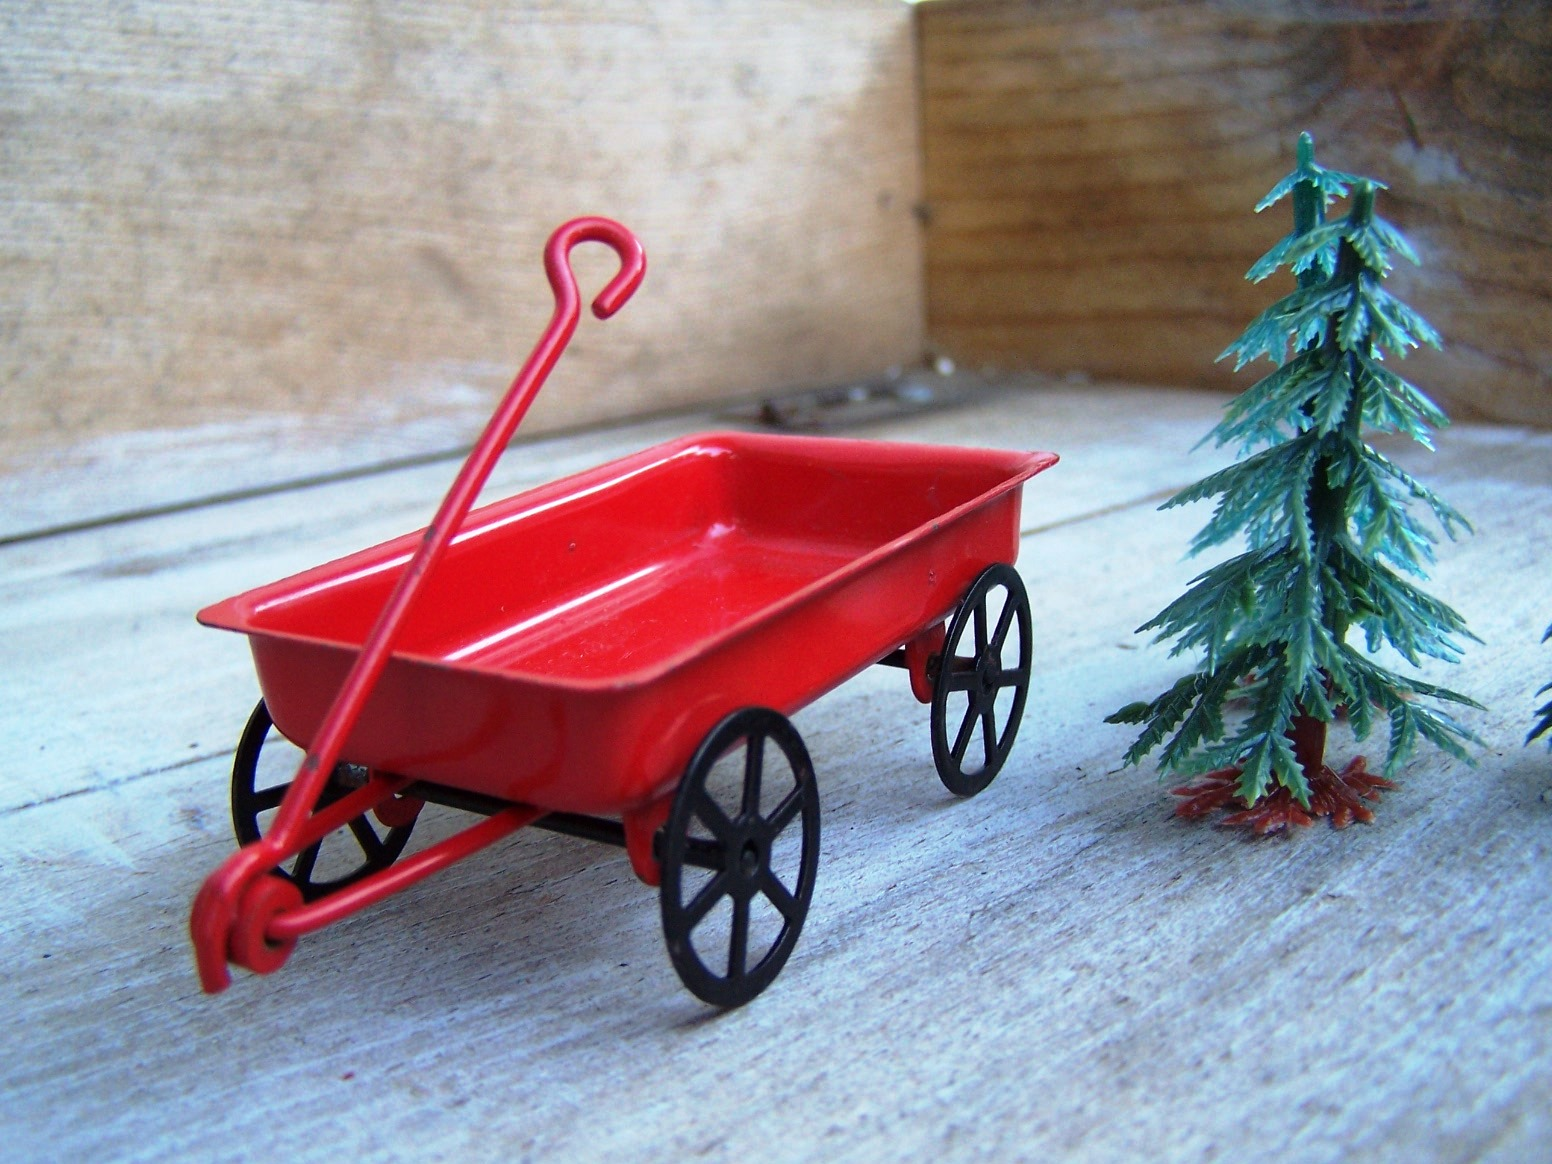 Wordless Wednesday: Little Red Wagon